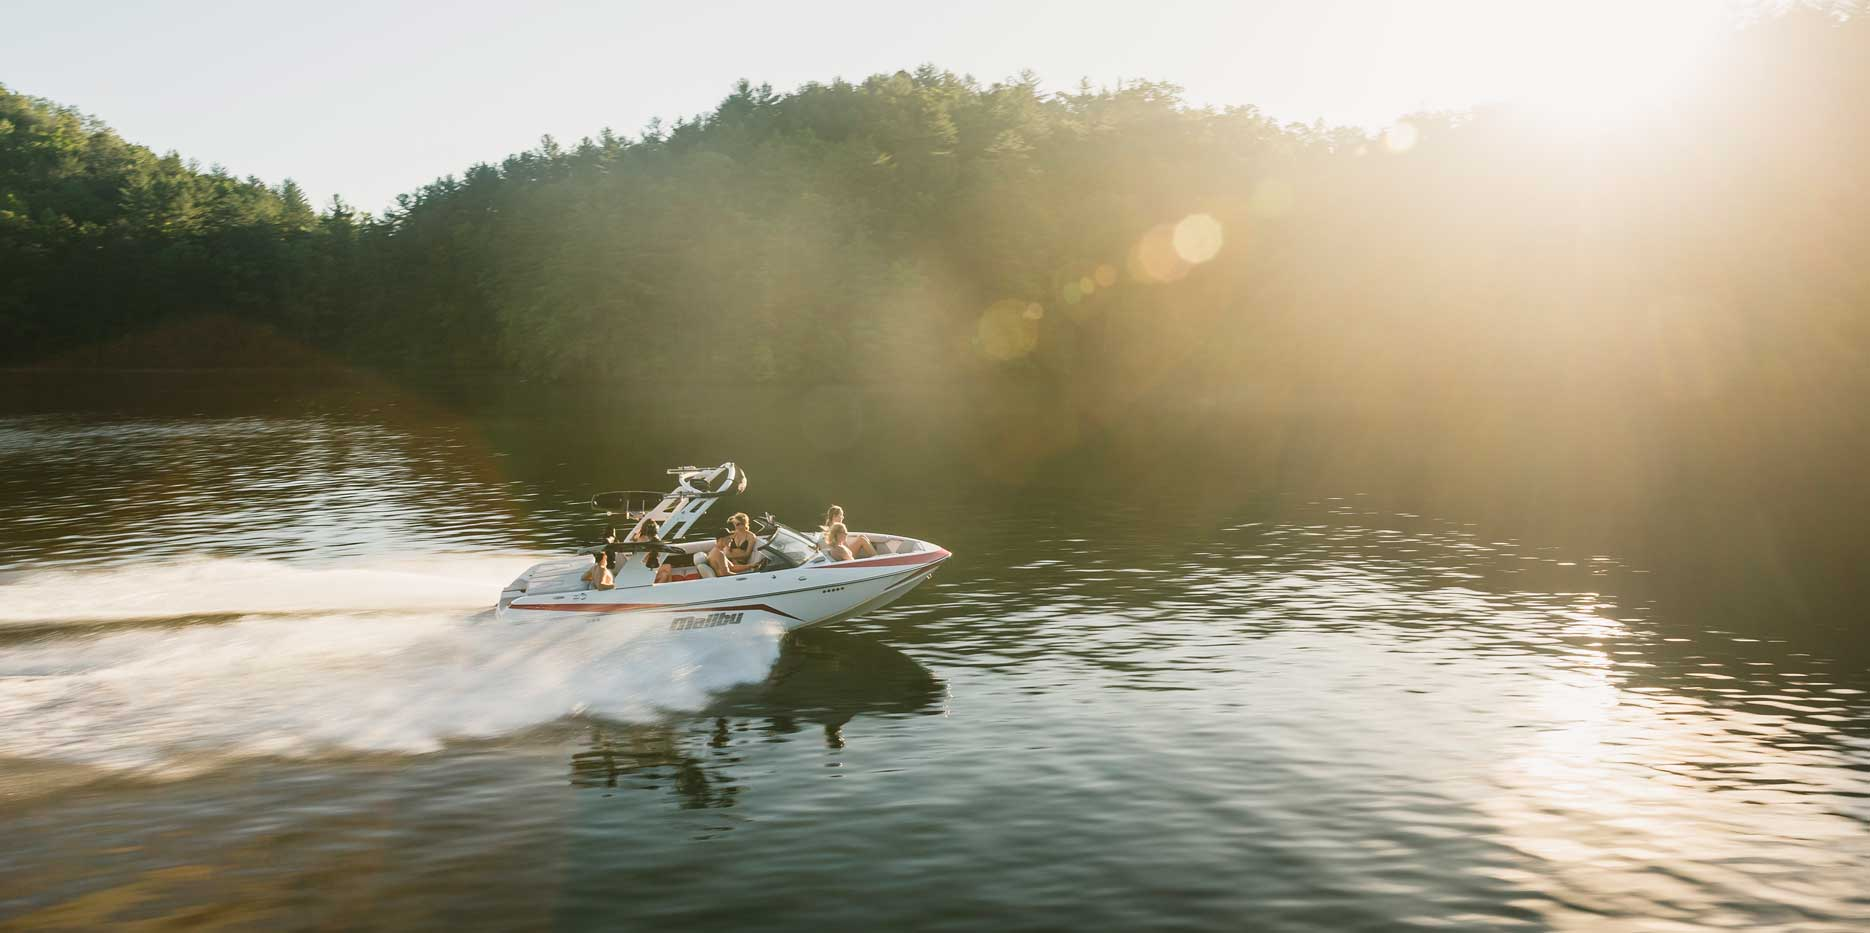 The Malibu 21 VLX skis, surfs, and wakeboards